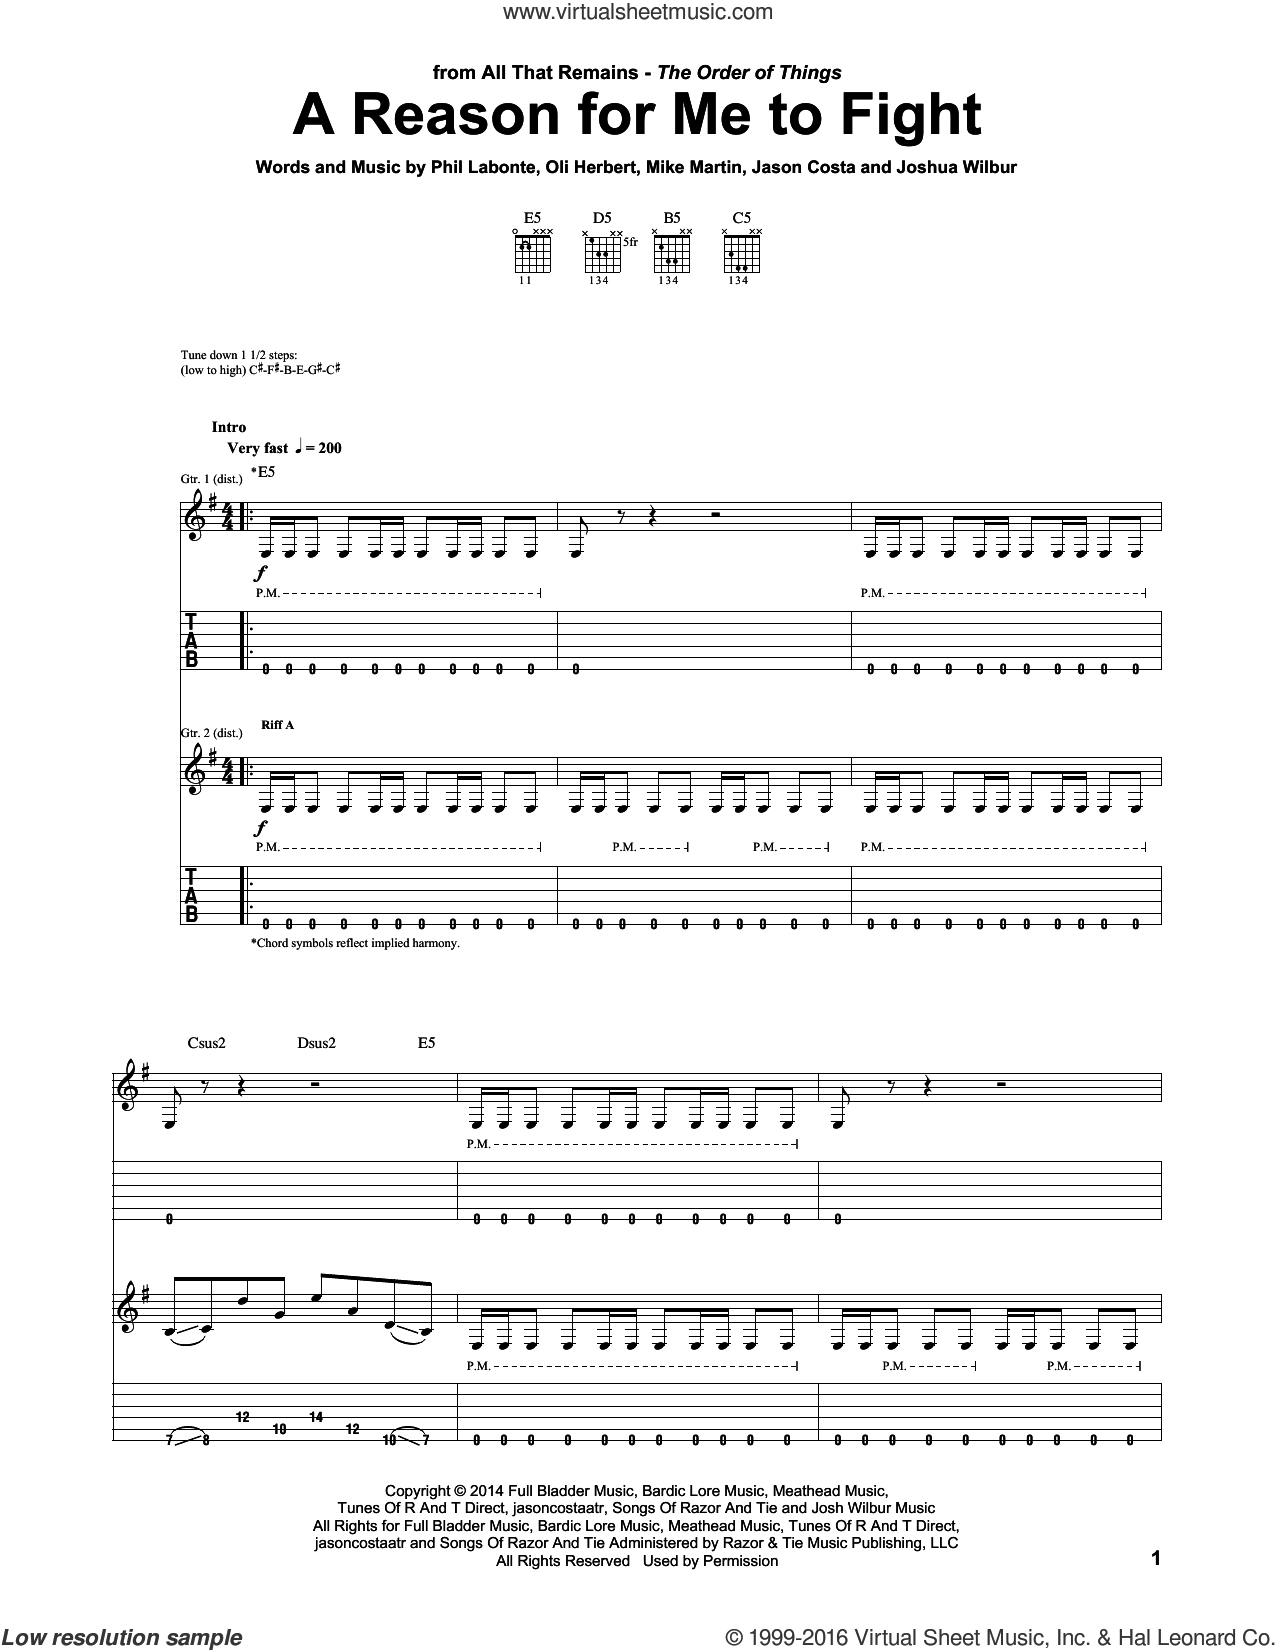 A Reason For Me To Fight sheet music for guitar (tablature) by All That Remains, intermediate. Score Image Preview.